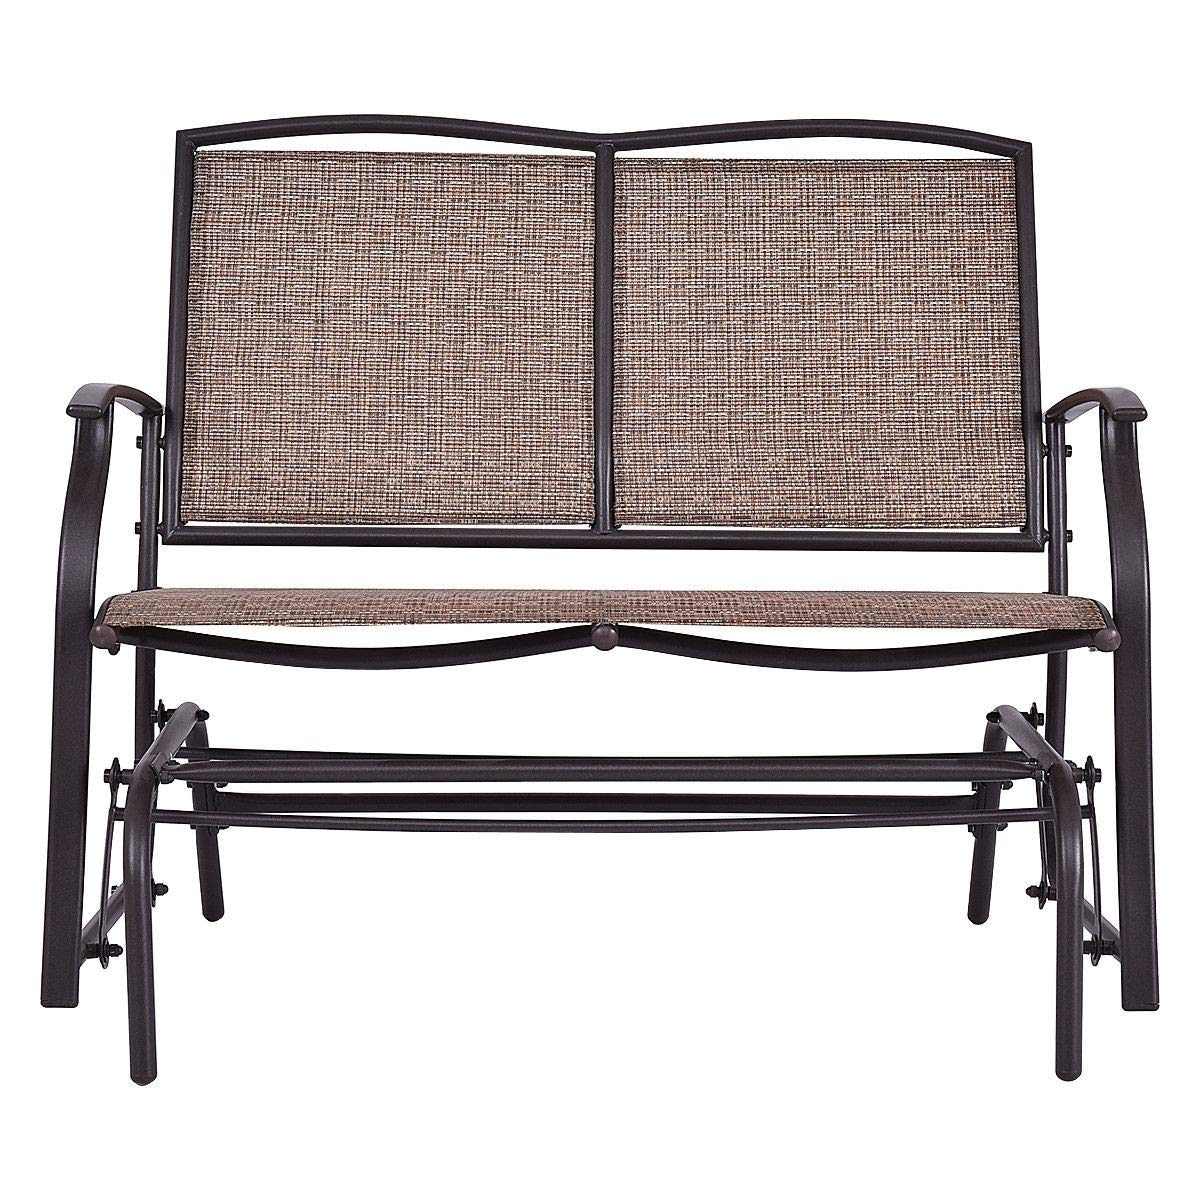 LordBee Indoor Comfortable Patio Glider Cozy Rocking Settle Relaxing 2 Person Outdoor Patio Garden Yard Pool Bench Chair